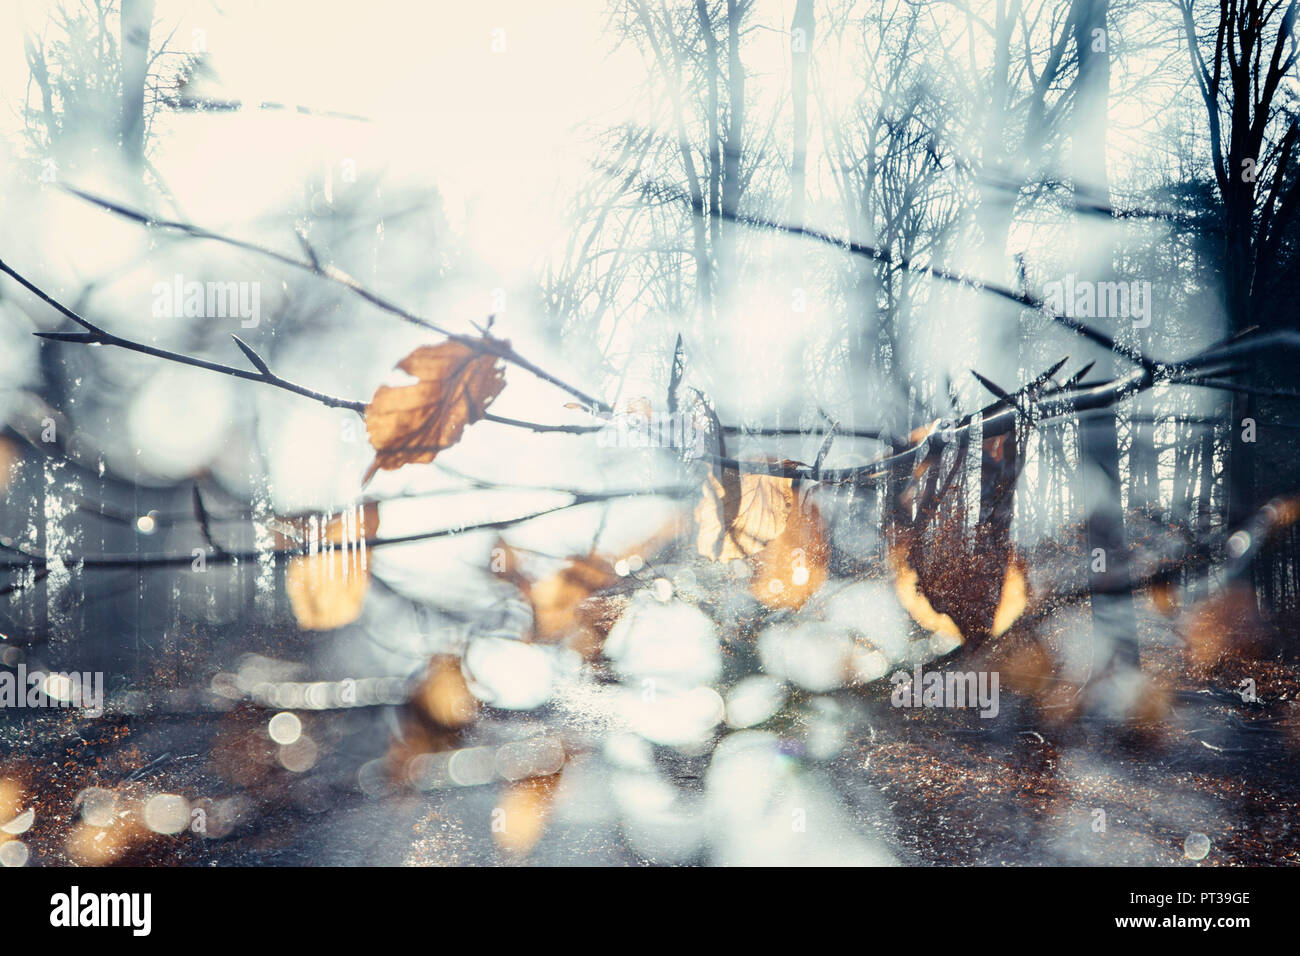 Teutoburg Forest in winter, twig with dried leaves - Stock Image